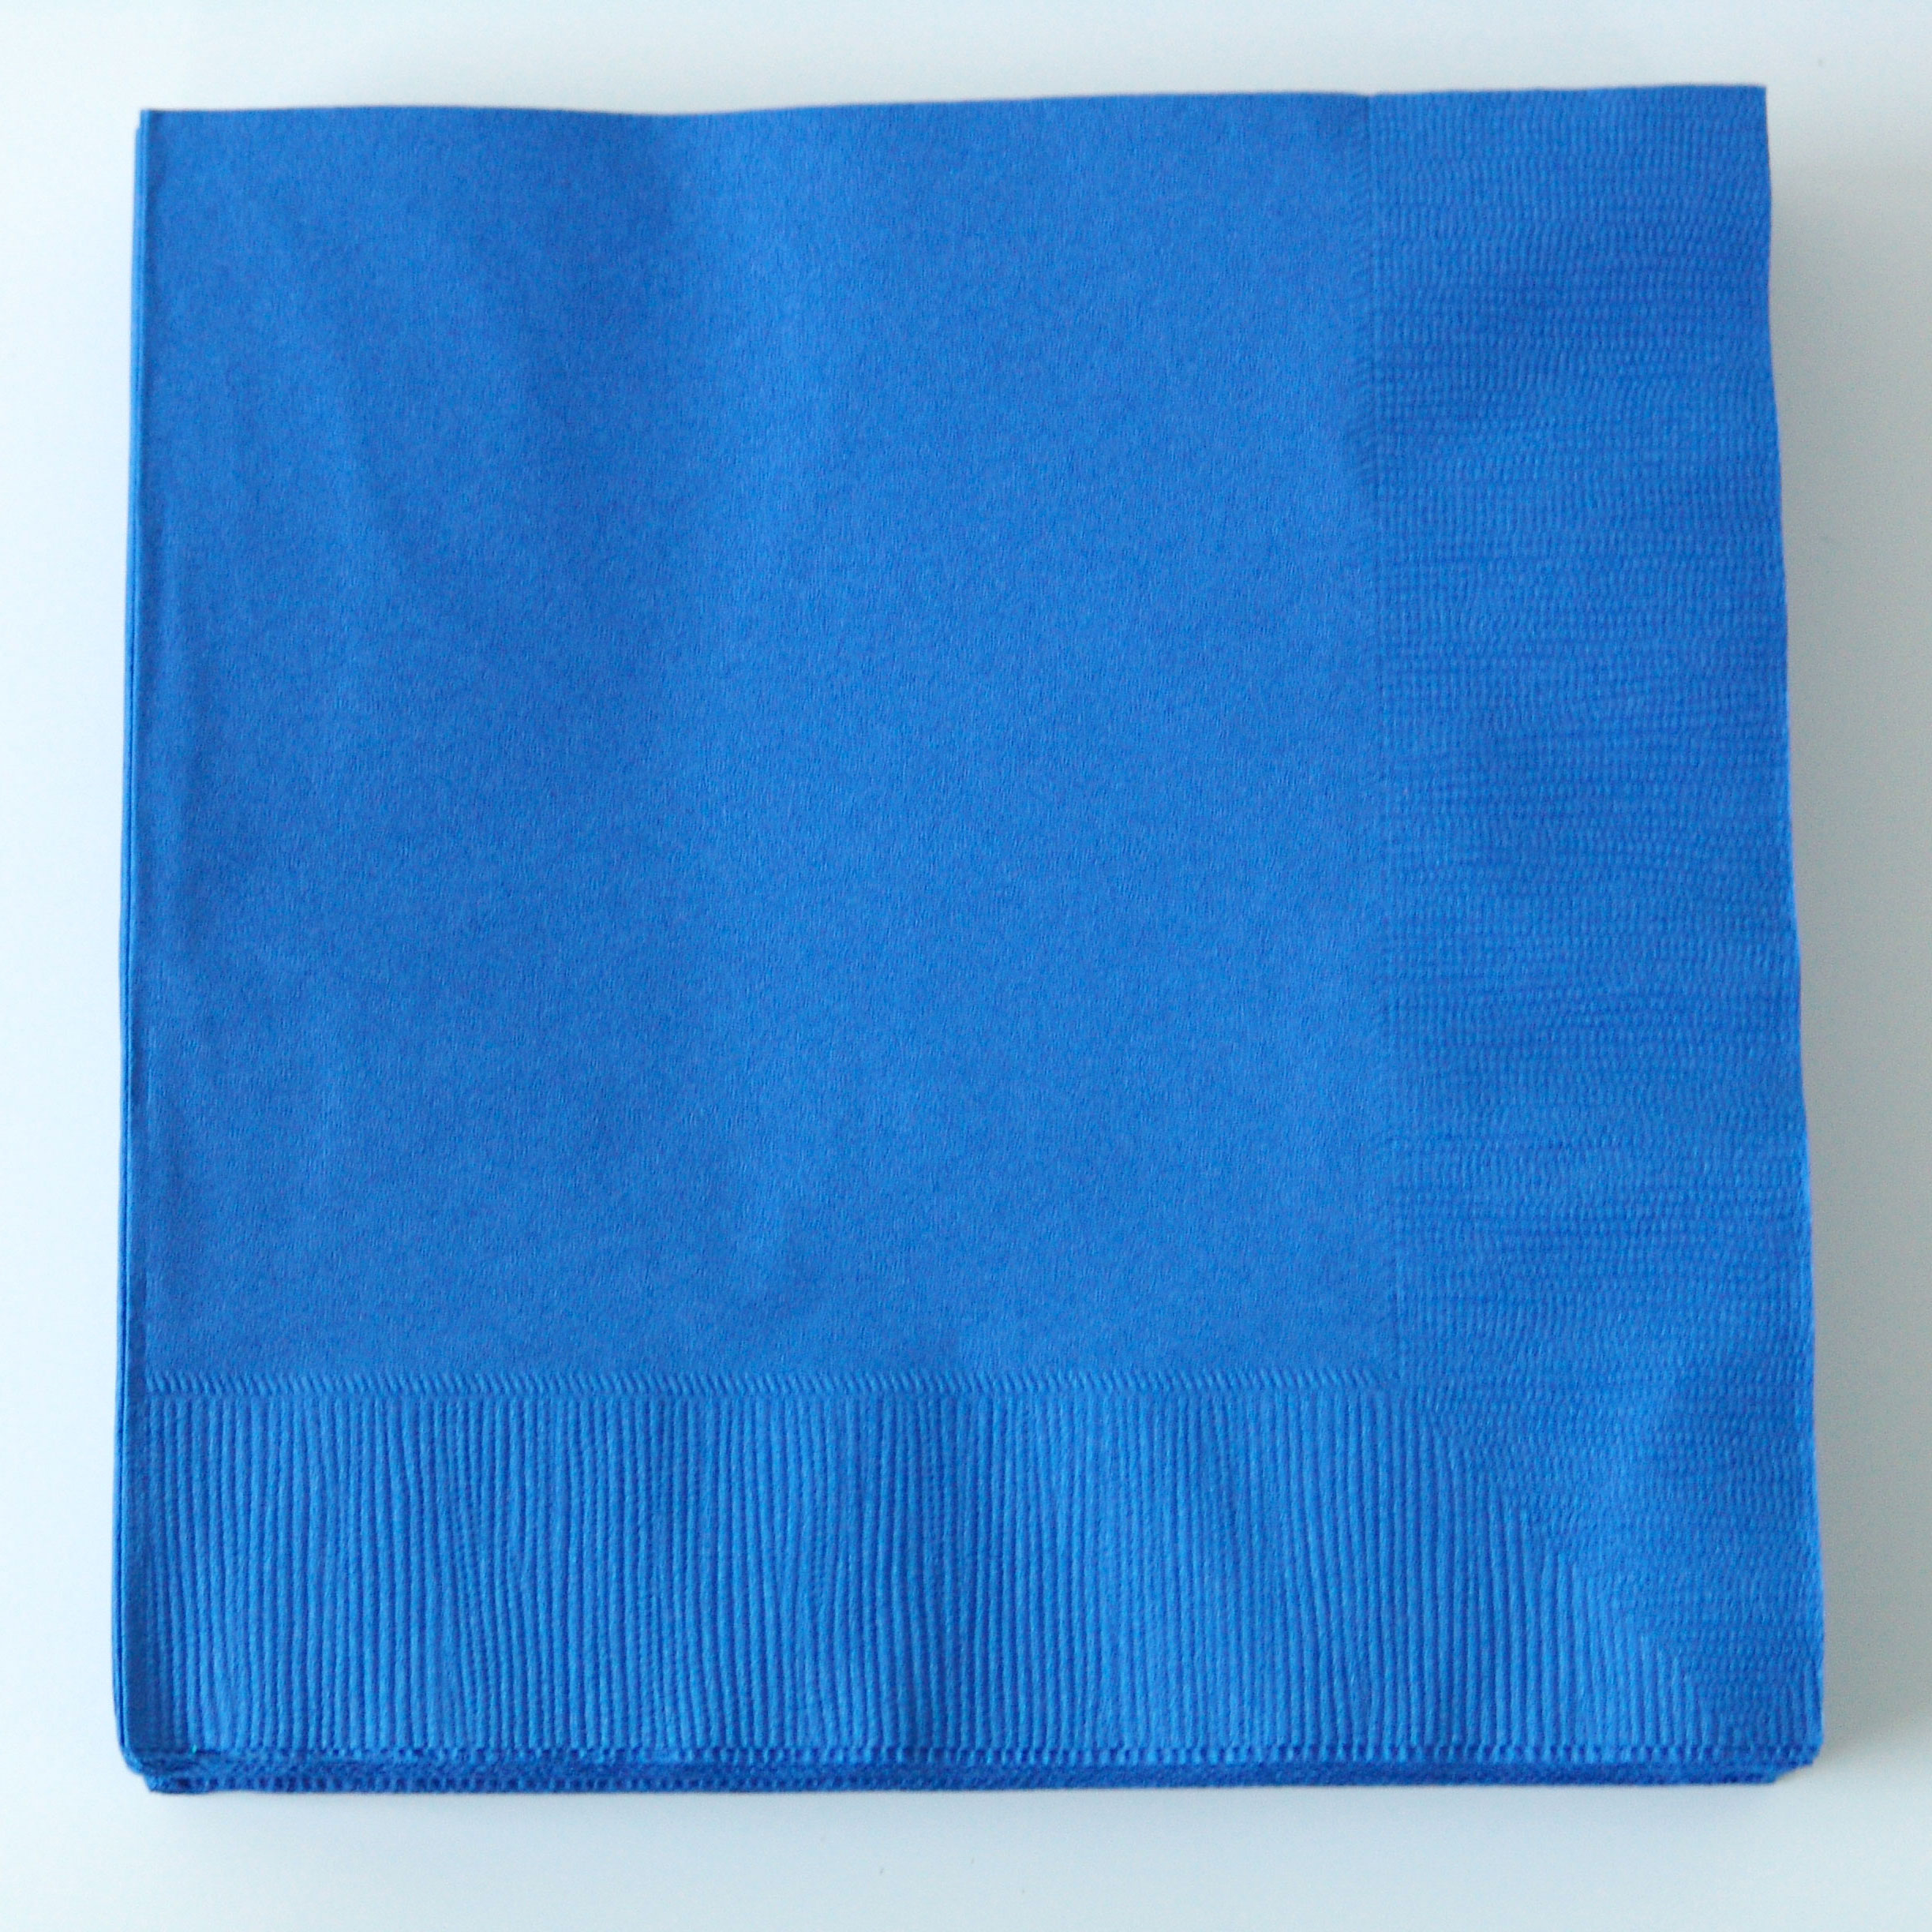 20 serviettes unies bleu roi